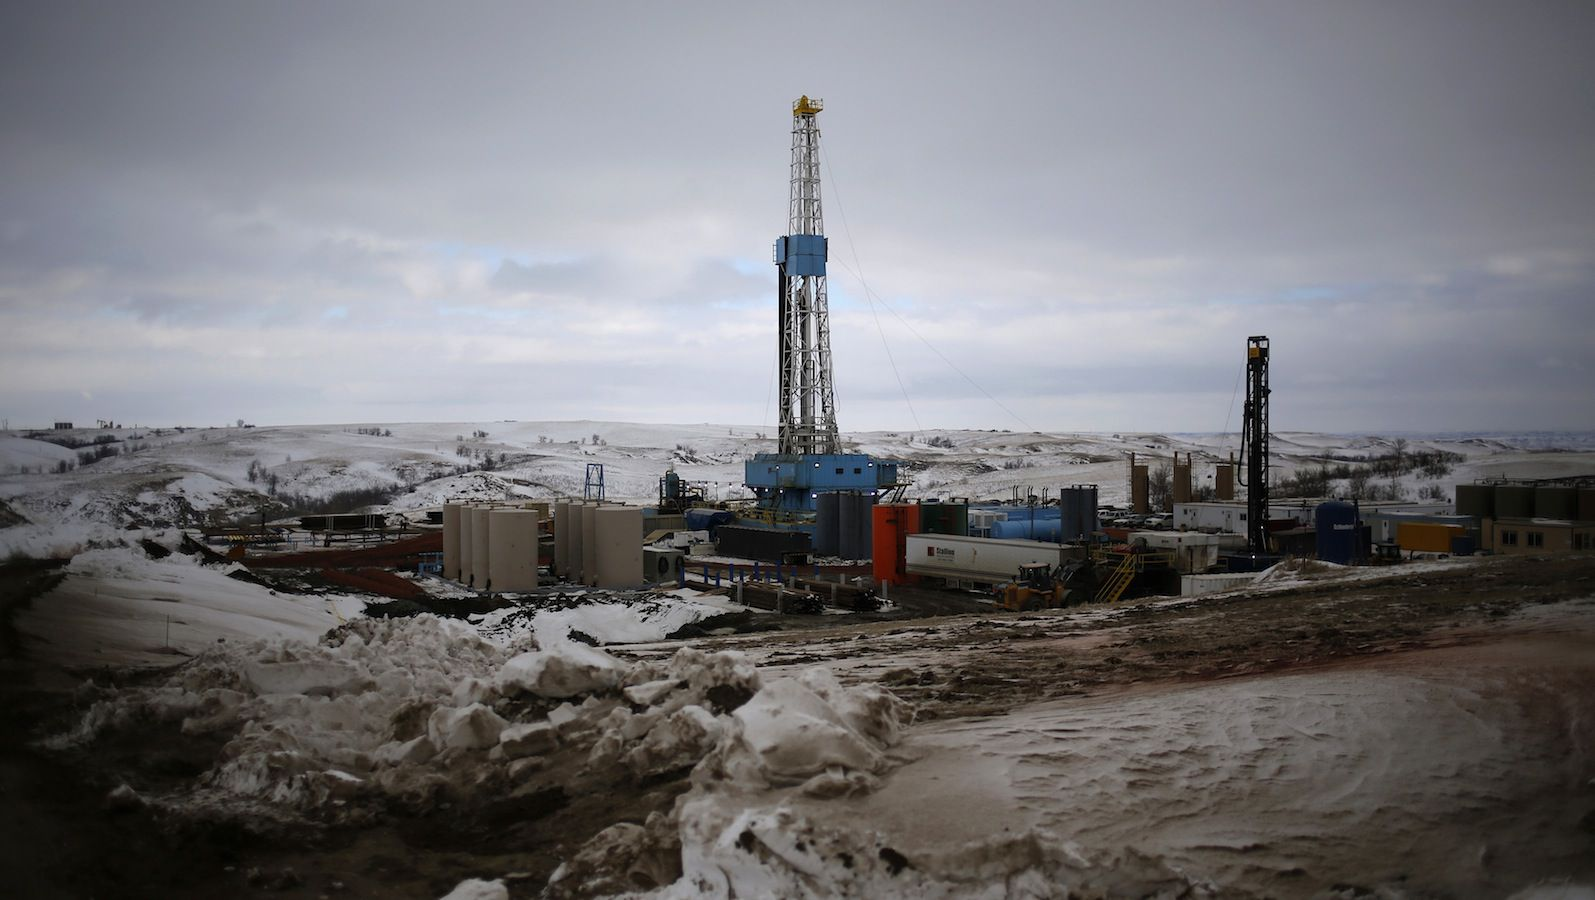 An oil derrick is seen at a fracking site for extracting oil outside of Williston, North Dakota March 11, 2013.  North Dakota's booming oil business has quickly ran up against a serious shortage of housing for the thousands of workers who have poured into the state looking to cash in on the Bakken oil formation that has made North Dakota the second-largest oil-producing state after Texas. Picture taken March 11, 2013.  REUTERS/Shannon Stapleton (UNITED STATES - Tags: BUSINESS ENERGY ENVIRONMENT COMMODITIES) - RTXY9SC